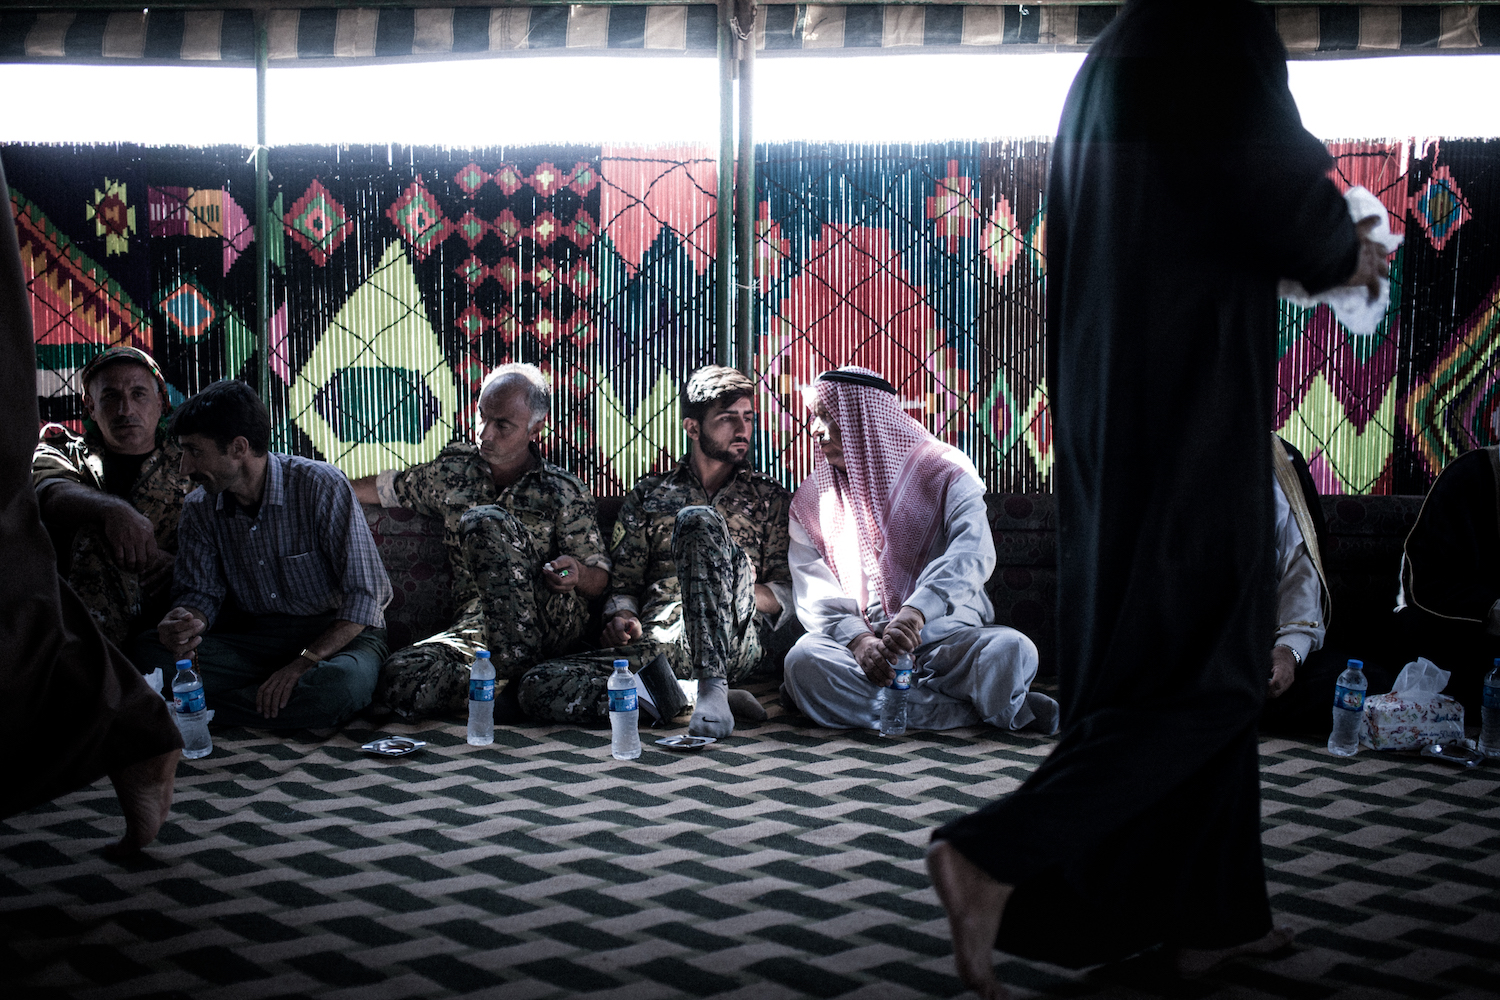 The SDF tries to win over local Arab tribes